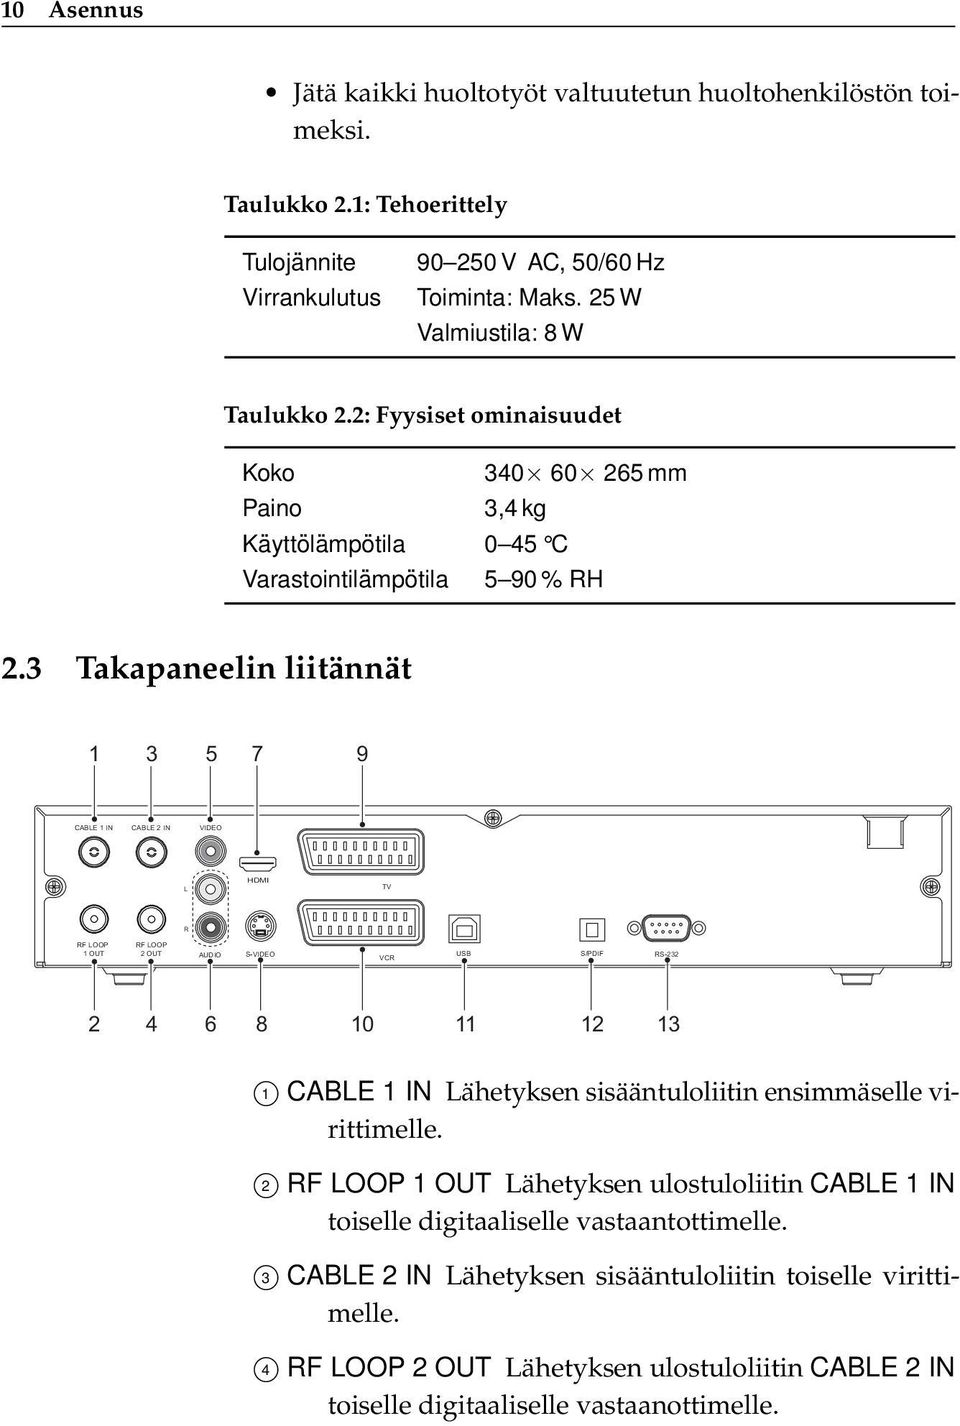 3 Takapaneelin liitännät 1 3 5 7 9 CABLE 1 IN CABLE 2 IN VIDEO L HDMI TV R RF LOOP 1 OUT RF LOOP 2 OUT AUDIO S-VIDEO VCR USB S/PDIF RS-232 2 4 6 8 10 11 12 13 1 CABLE 1 IN Lähetyksen